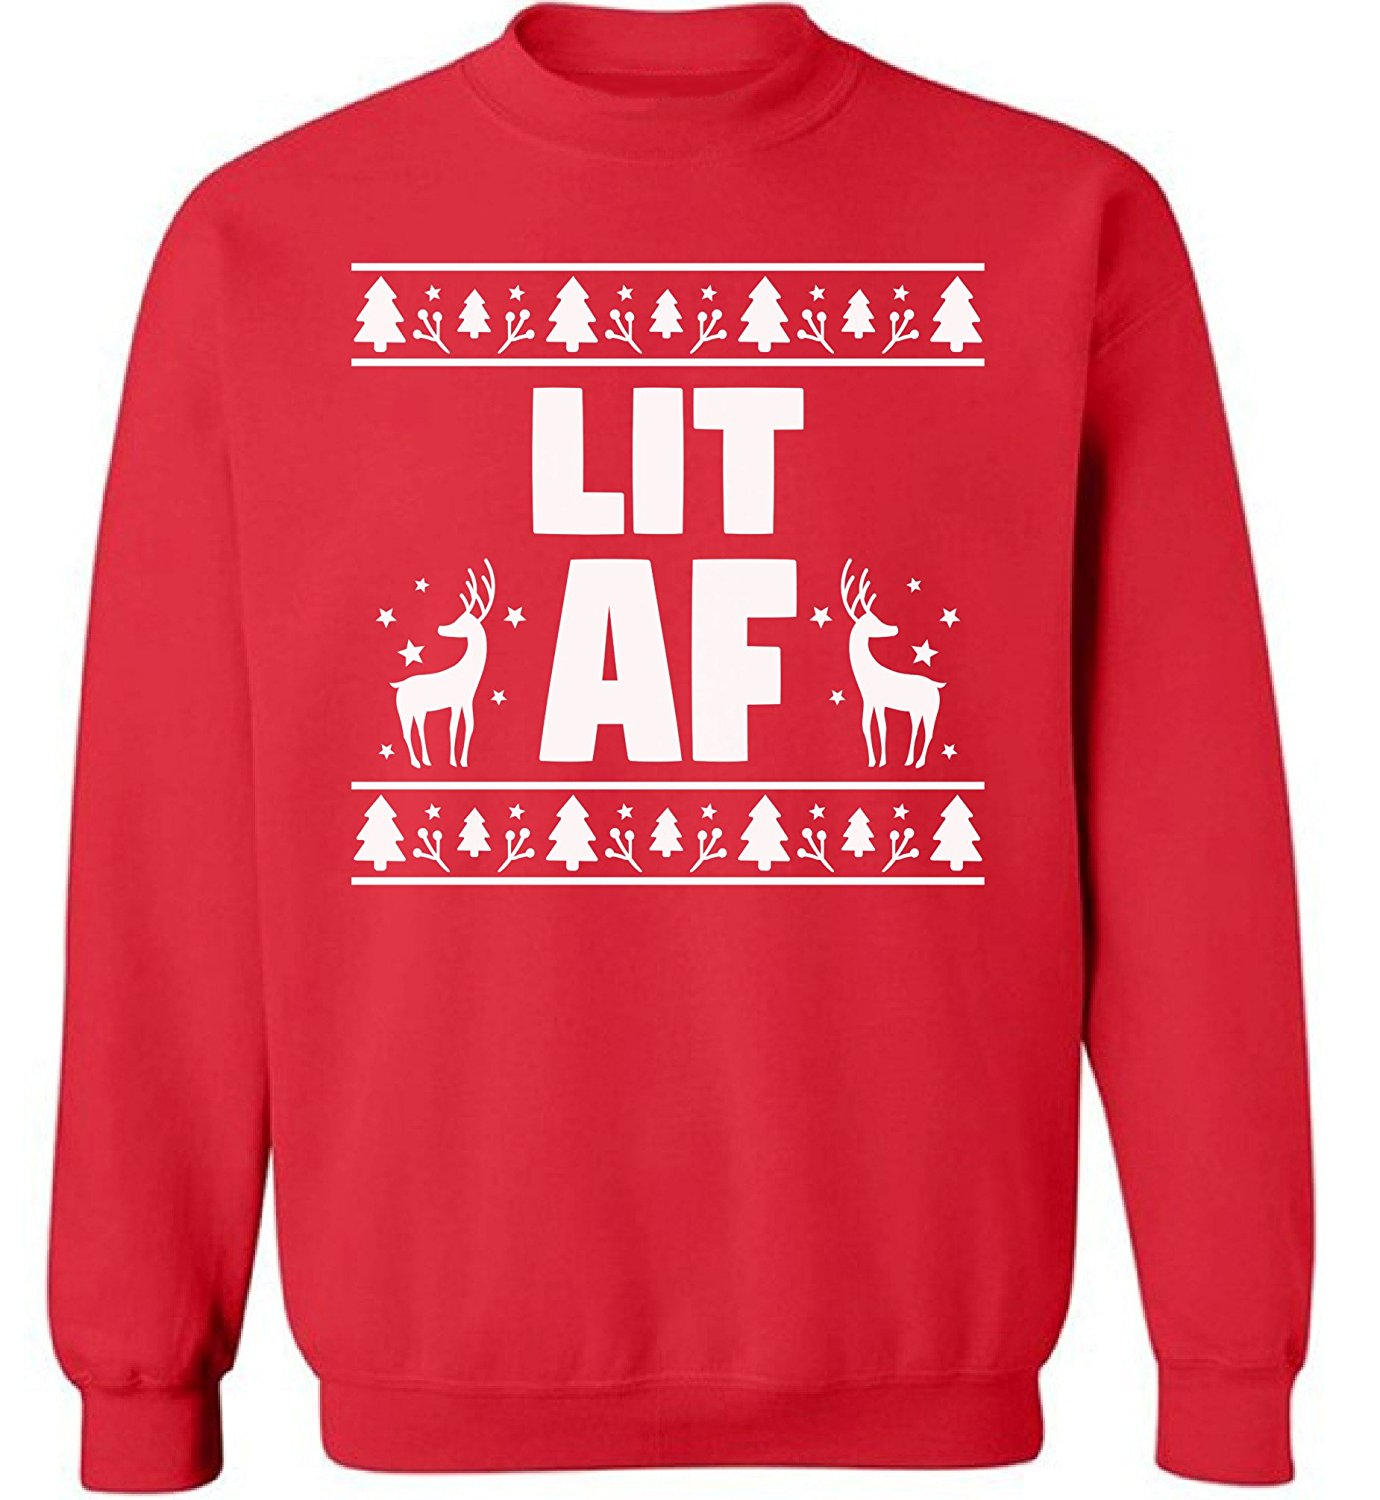 3306d56100c Get Quotations · Pekatees Lit AF Sweatshirt Ugly Christmas Sweater Lit AF  Sweater Ugly Christmas Sweatshirts Christmas Lit Sweaters